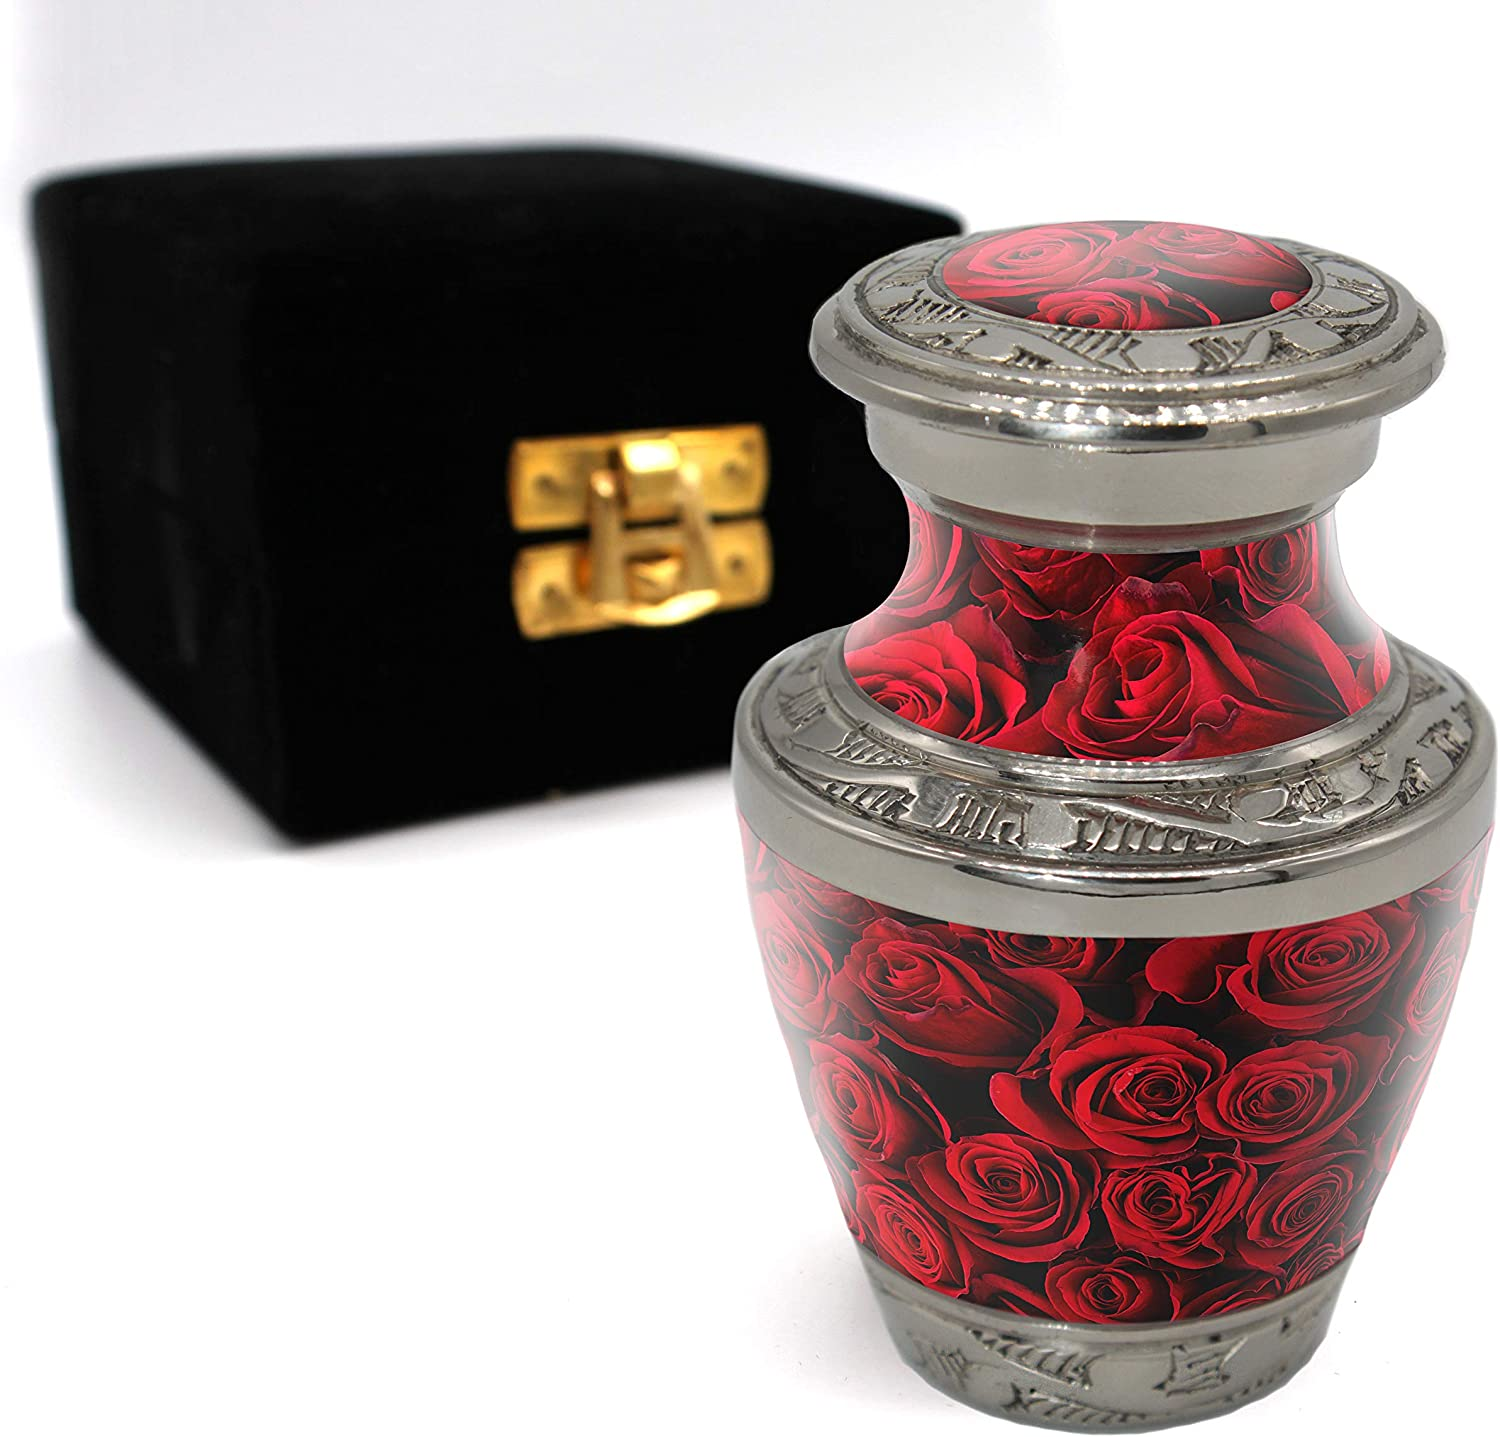 Crimson Rose Cremation Urns for Adult Ashes for Funeral, Burial, Niche or Columbarium, 100% Brass, Cremation Urns for Human Ashes Adult 200 Cubic inches (Crimson Rose, Small / Keepsake)